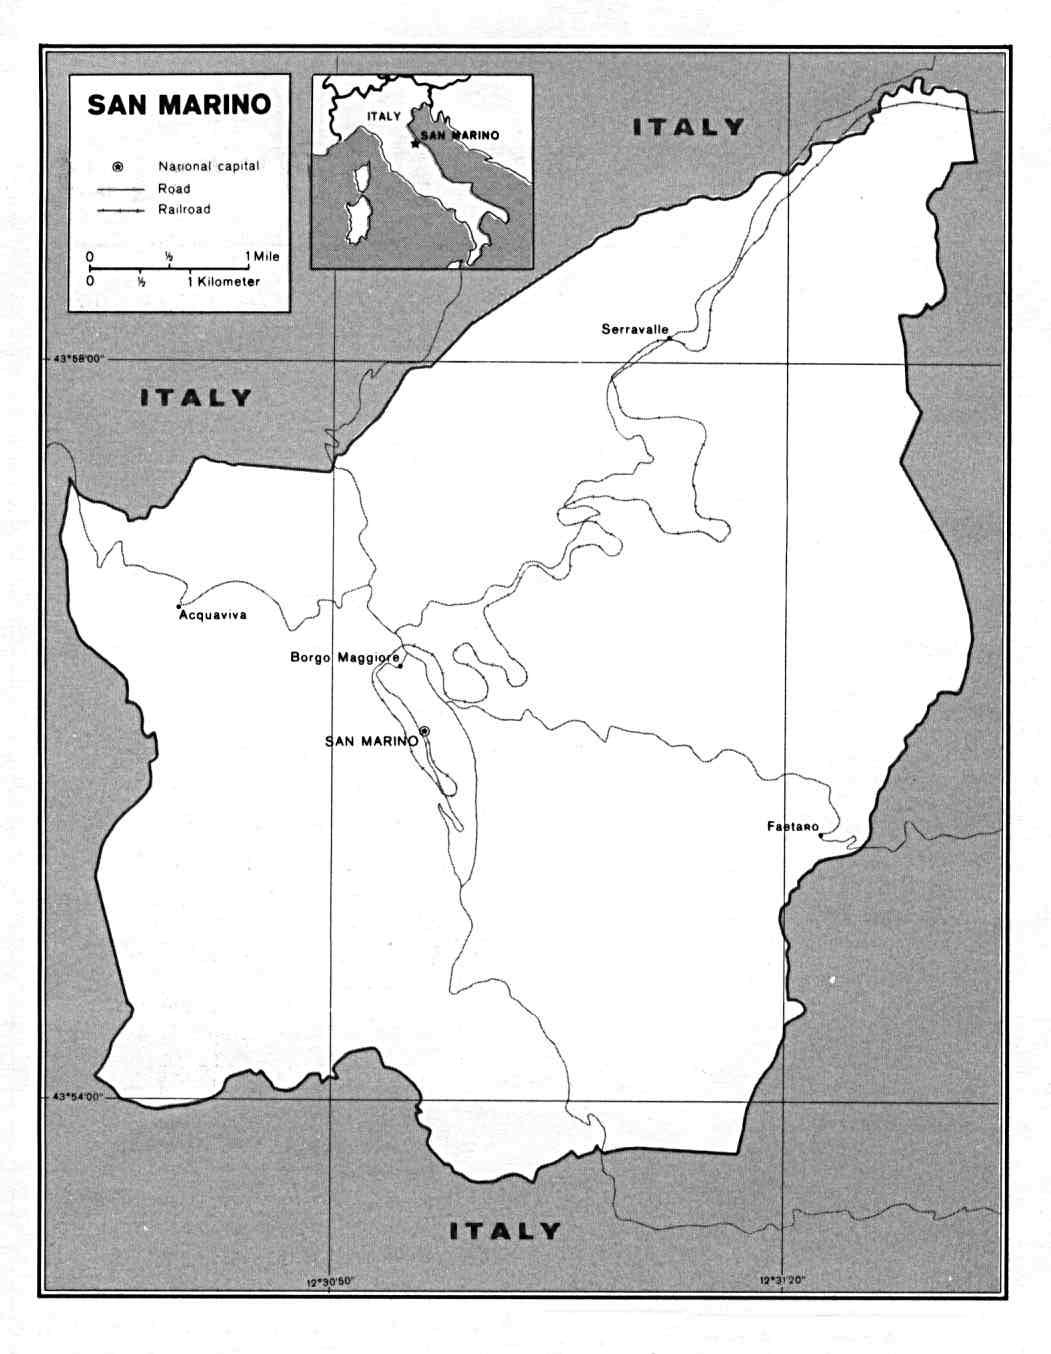 Europe Maps - Perry-Castañeda Map Collection - UT Library Online